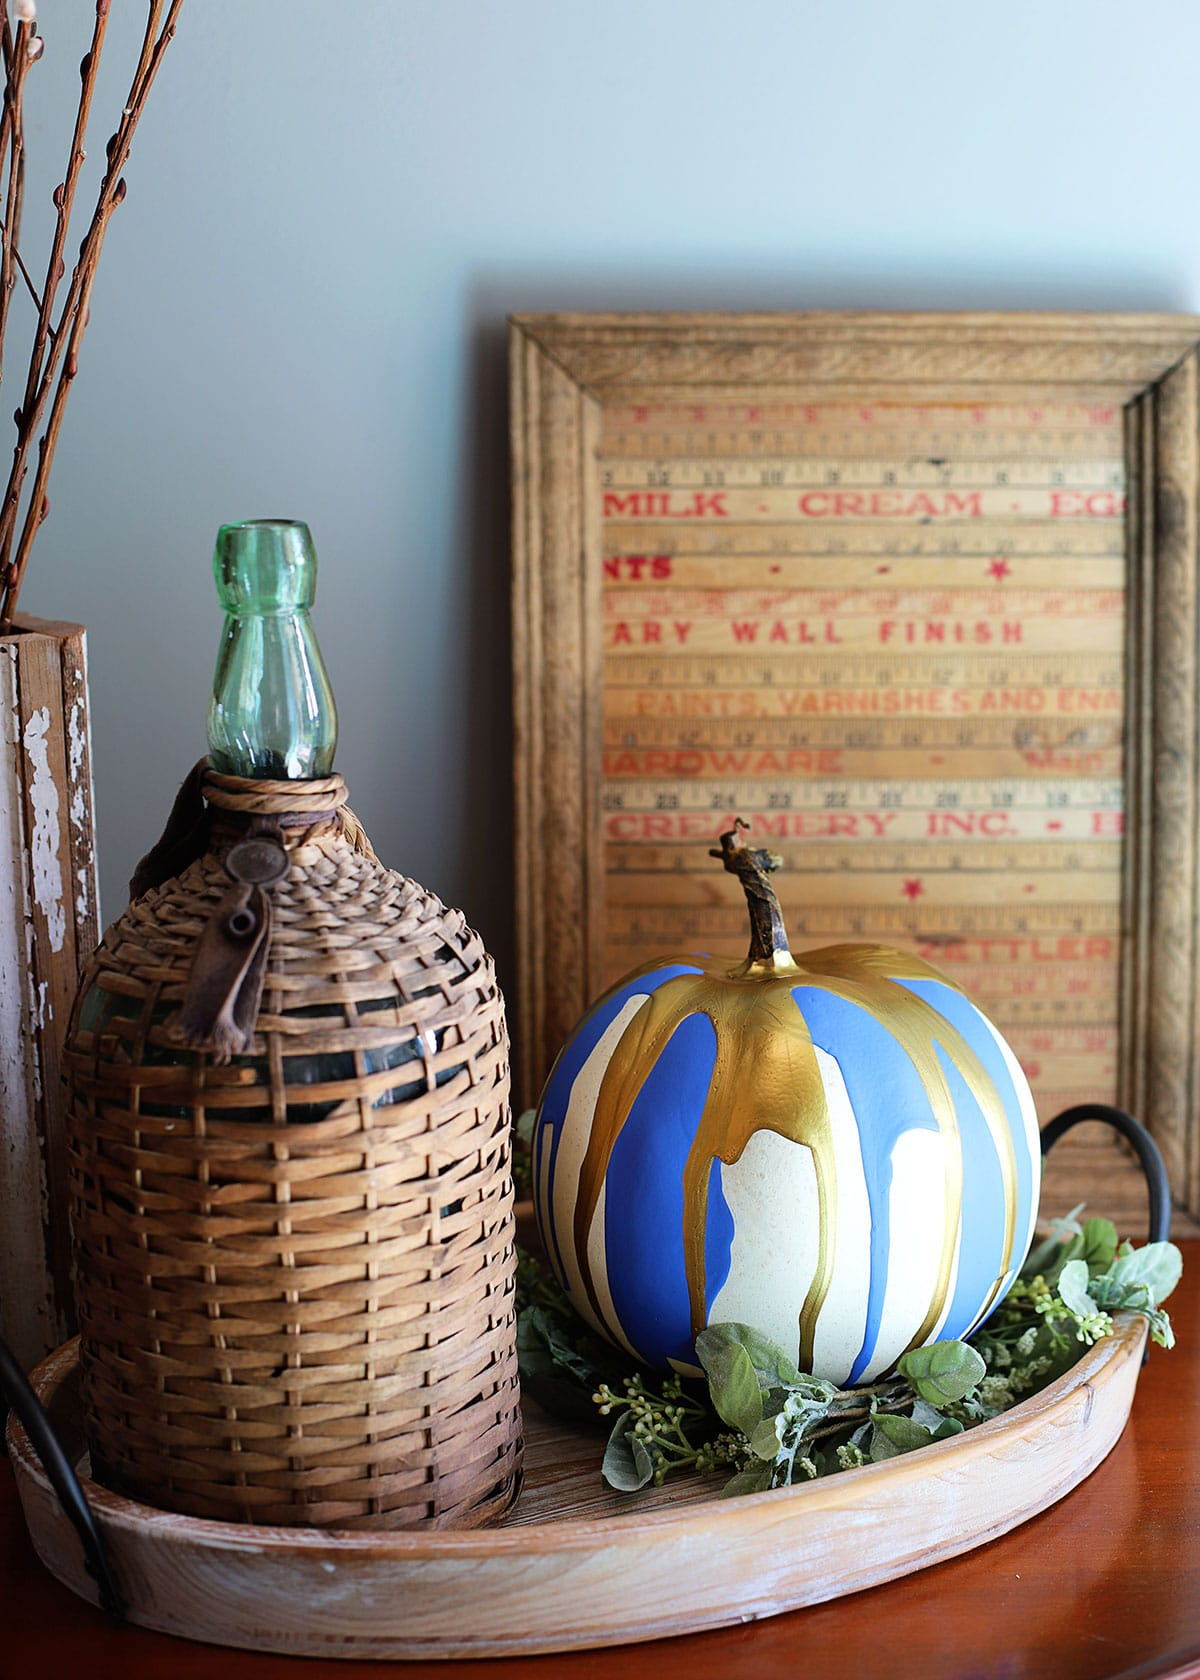 Paint dripped pumpkin setting on a tray with French farmhouse decor.